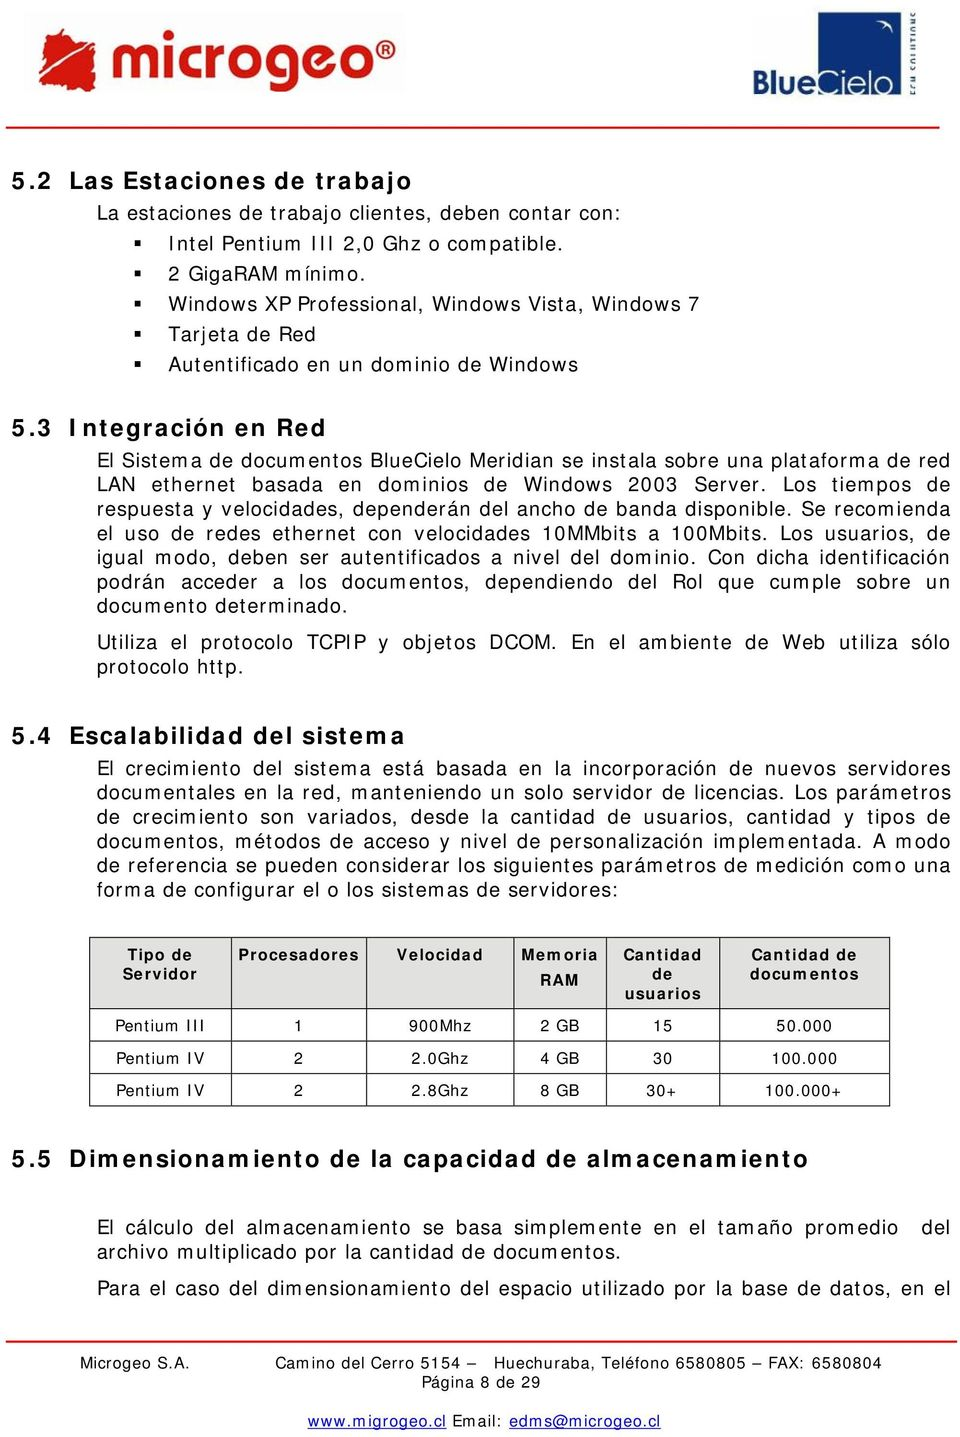 3 Integración en Red El Sistema de documentos BlueCielo Meridian se instala sobre una plataforma de red LAN ethernet basada en dominios de Windows 2003 Server.